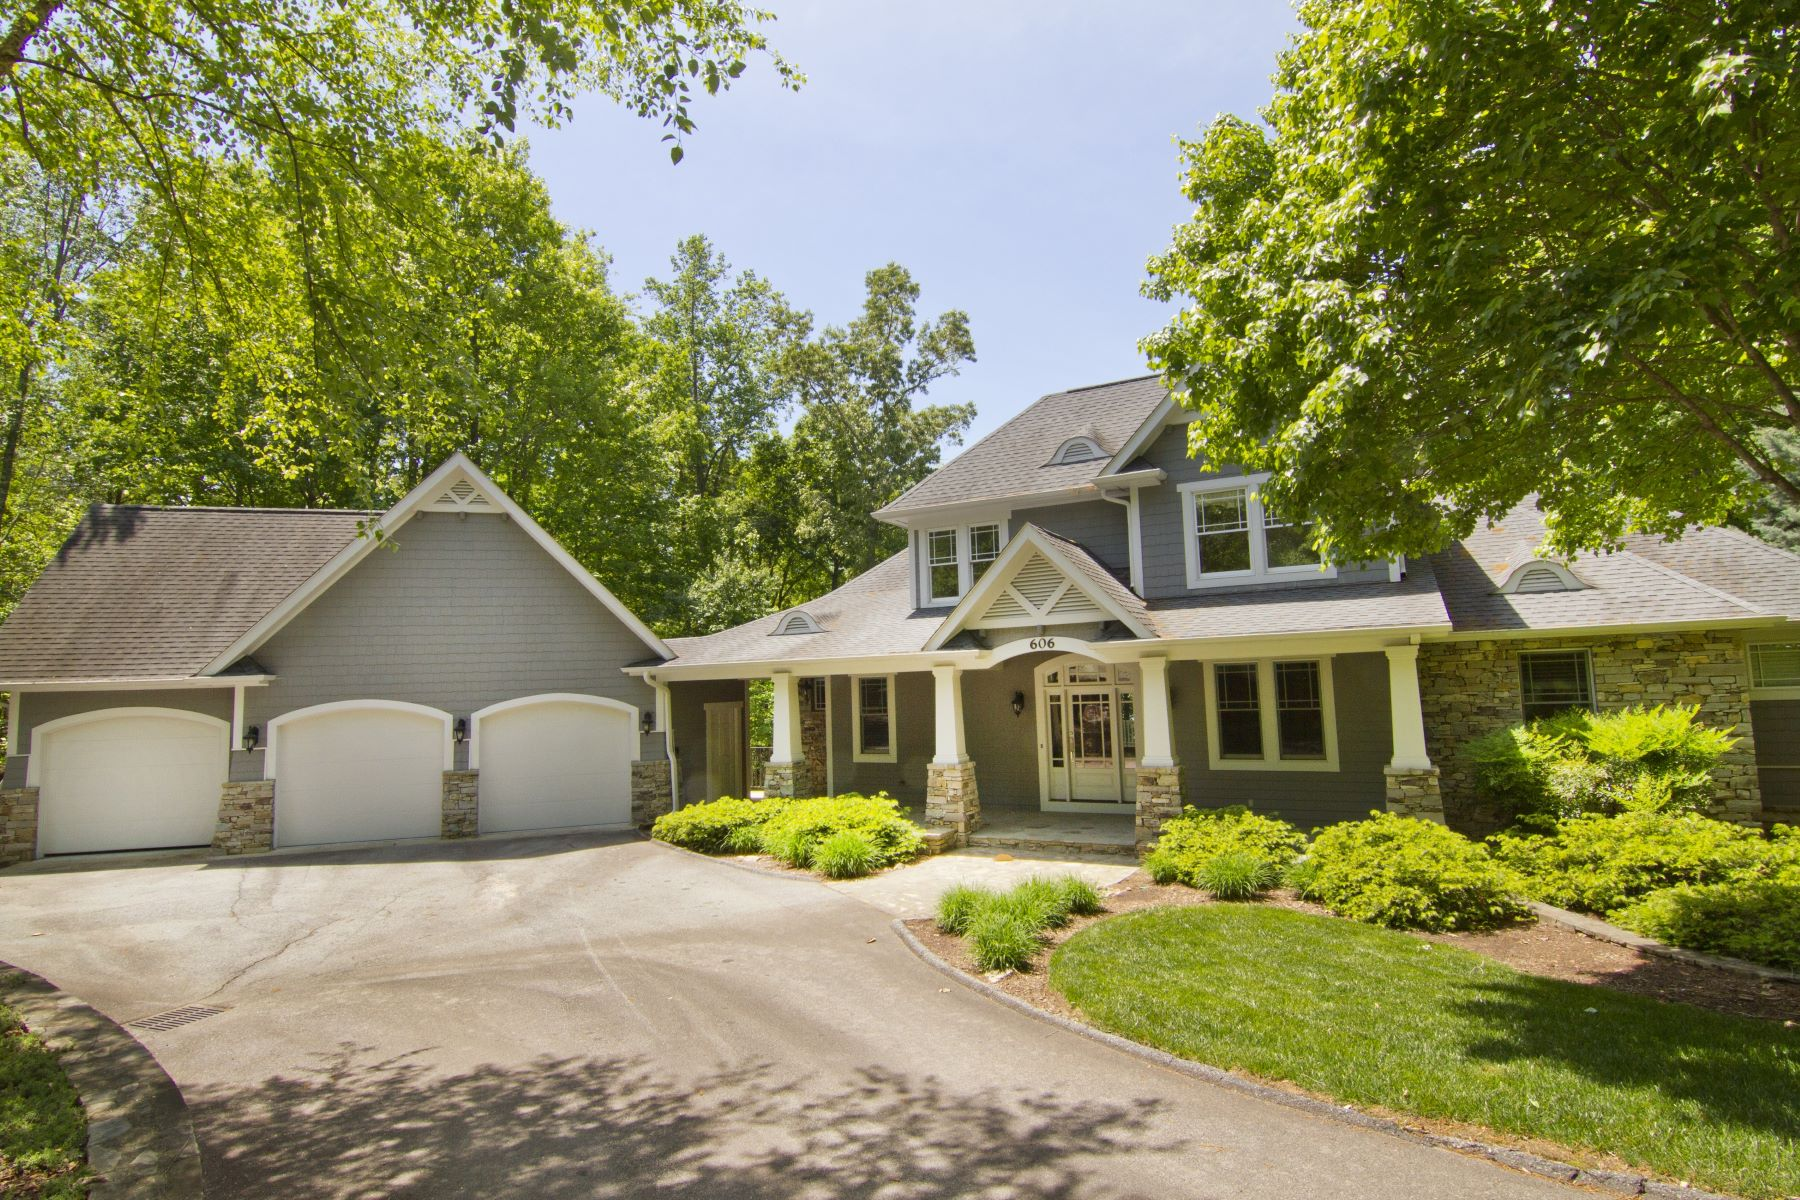 Single Family Home for Sale at Three Story Waterfront Home with Beautiful Western Lake Views 606 Wind Flower Drive The Cliffs At Keowee Vineyards, Sunset, South Carolina, 29685 United States